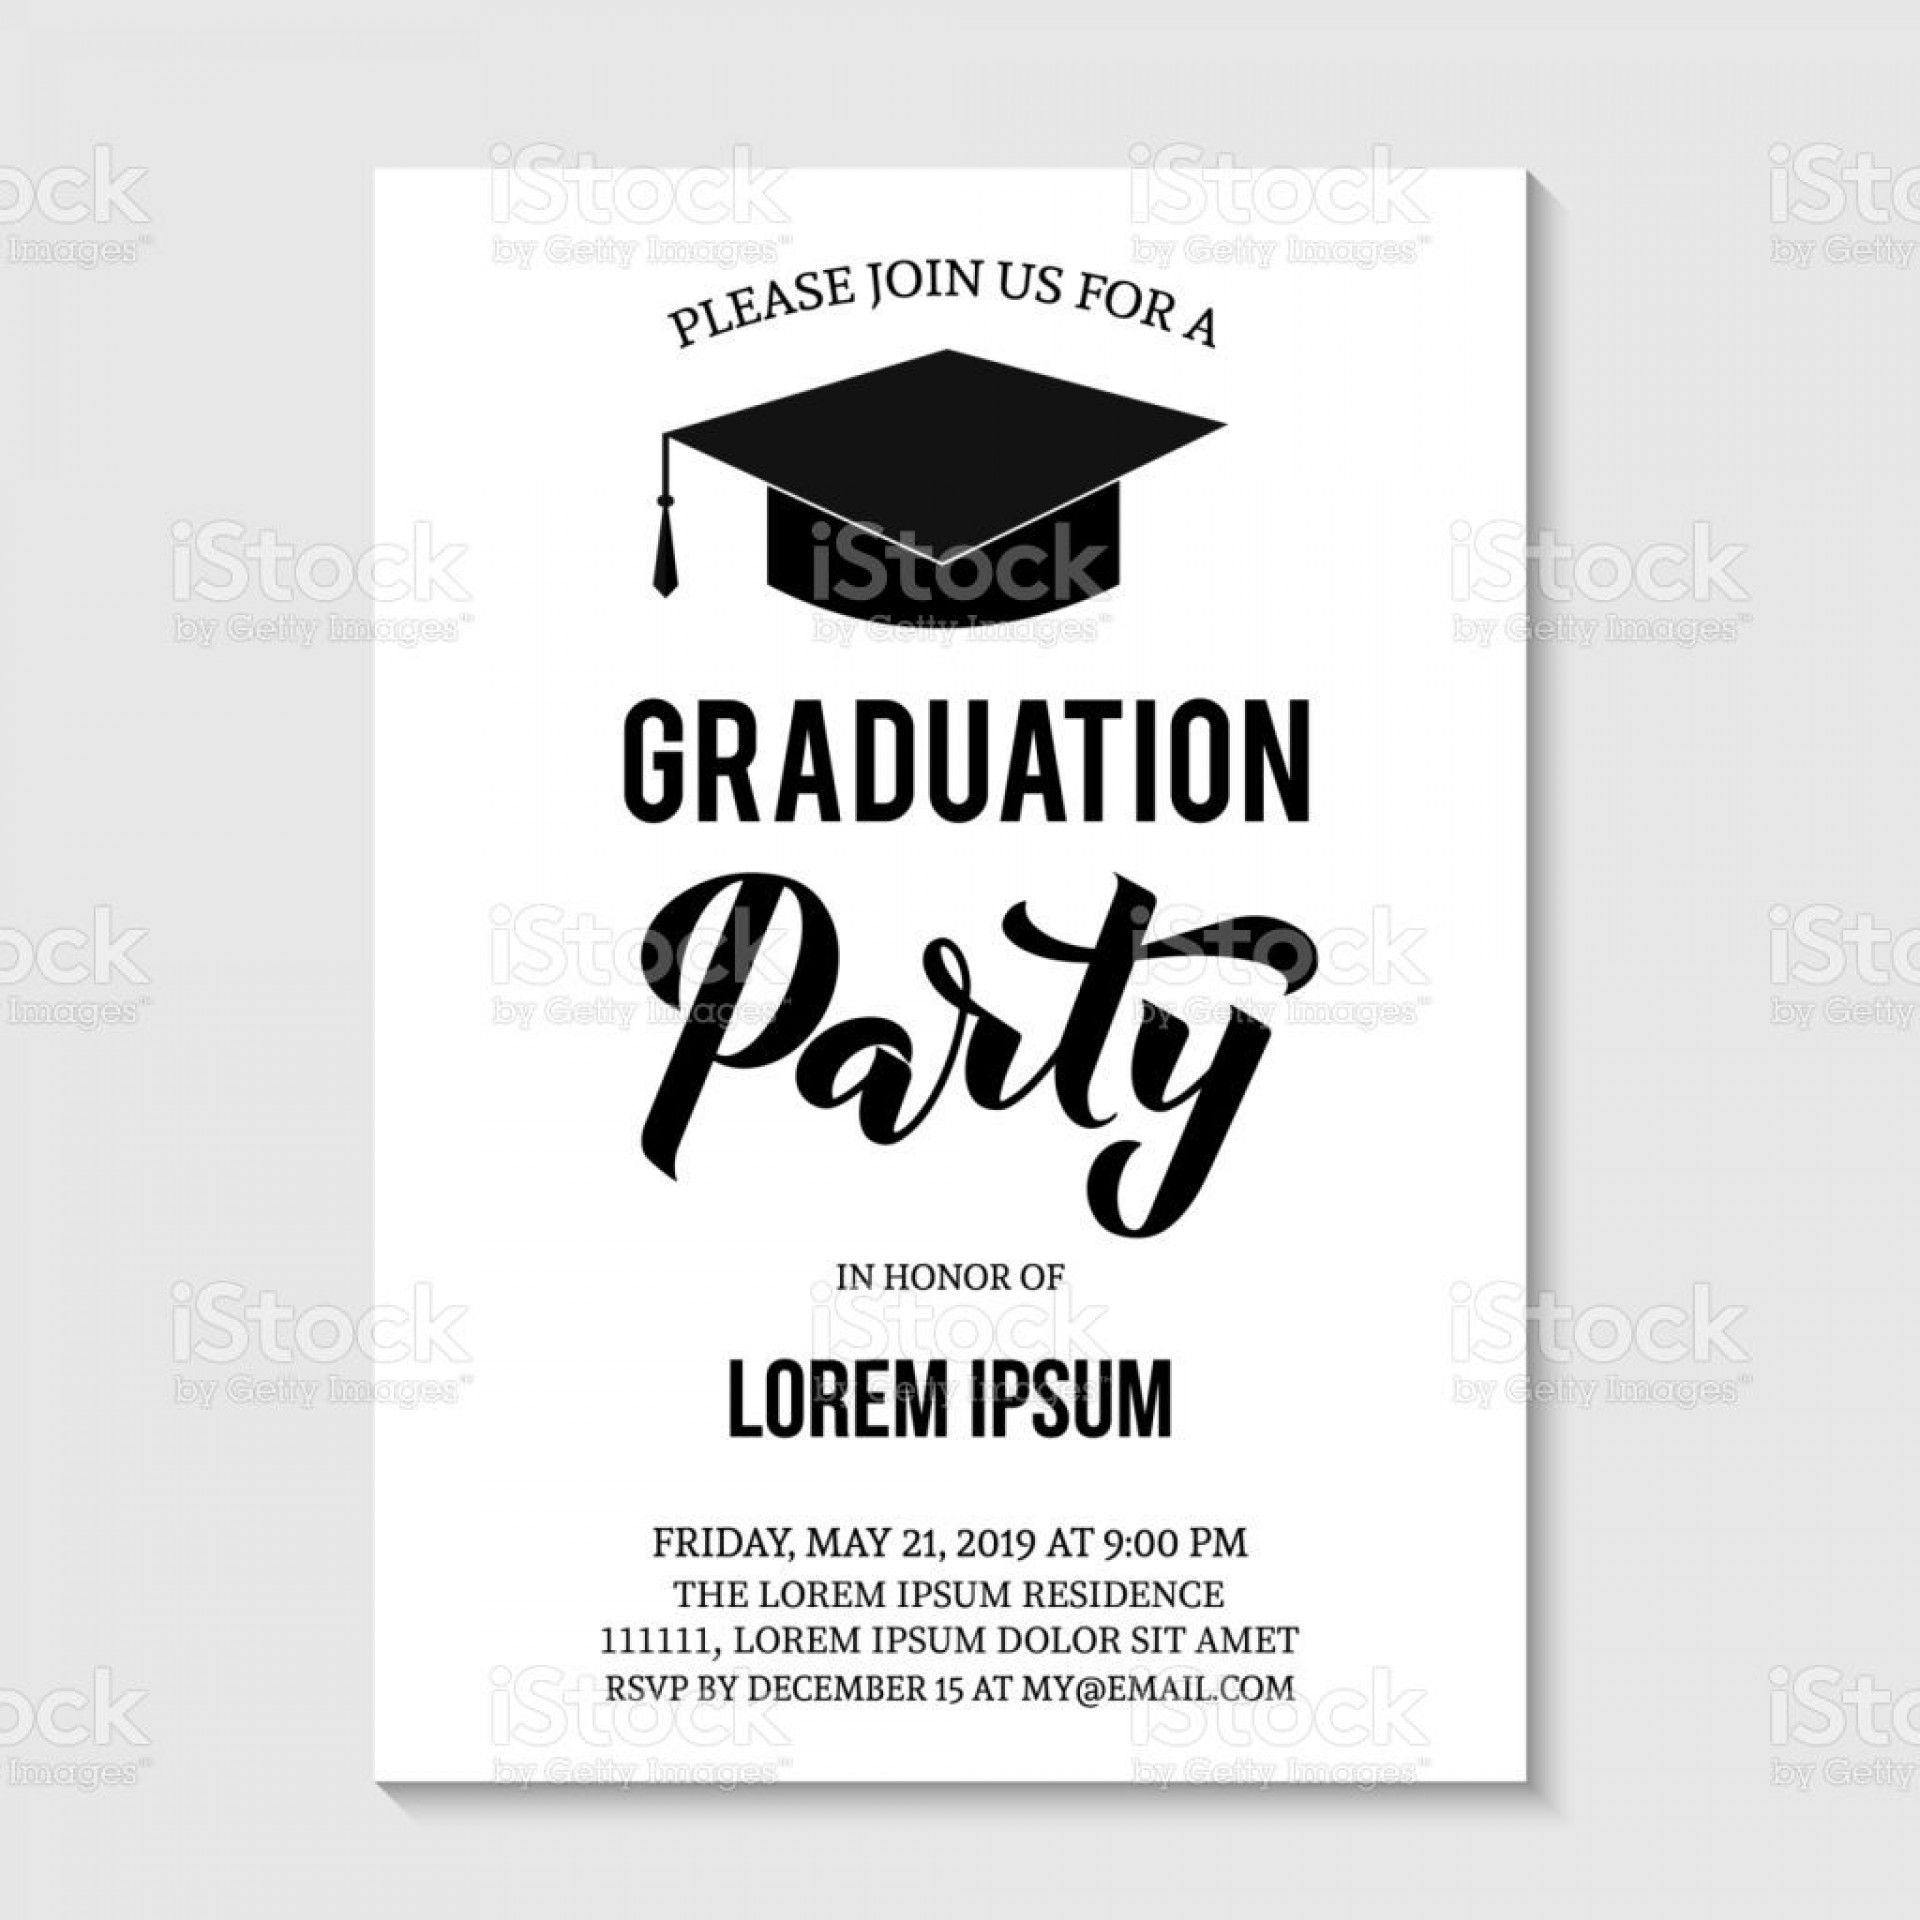 000 Staggering Graduation Party Invitation Template Inspiration  Templates 4 Per Page Free Reception1920